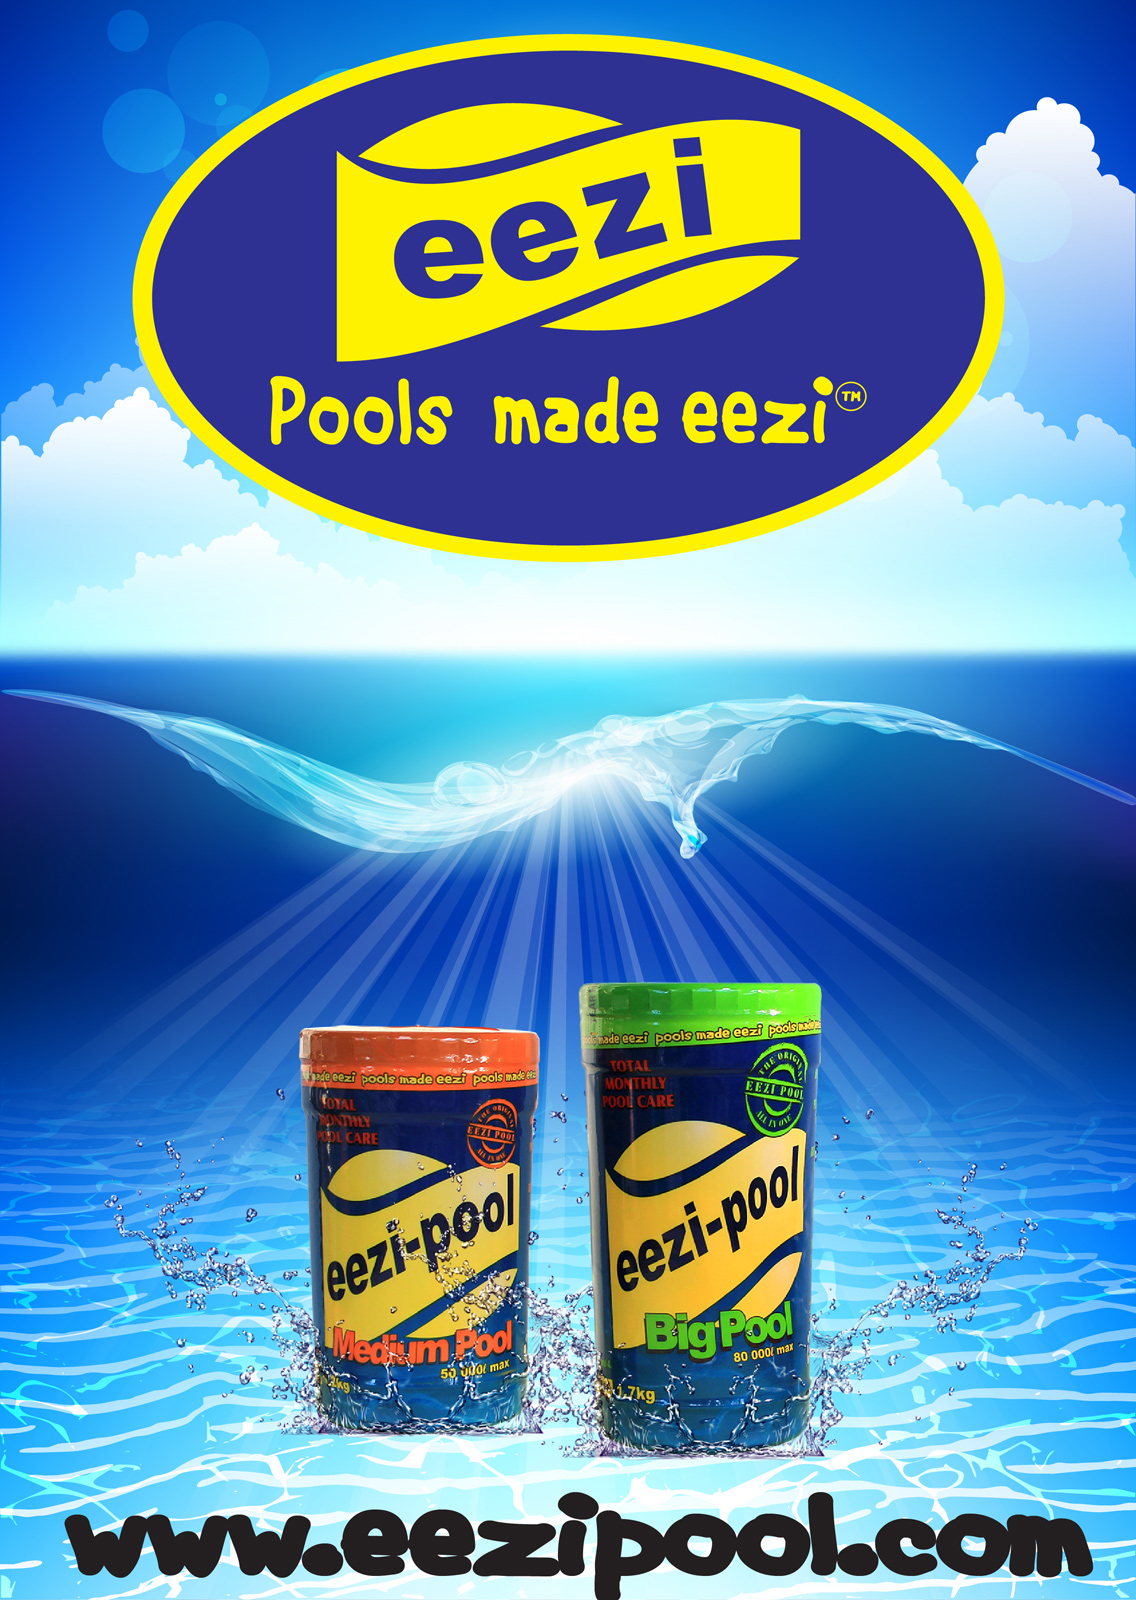 Eezi-Pool-Advert-001a